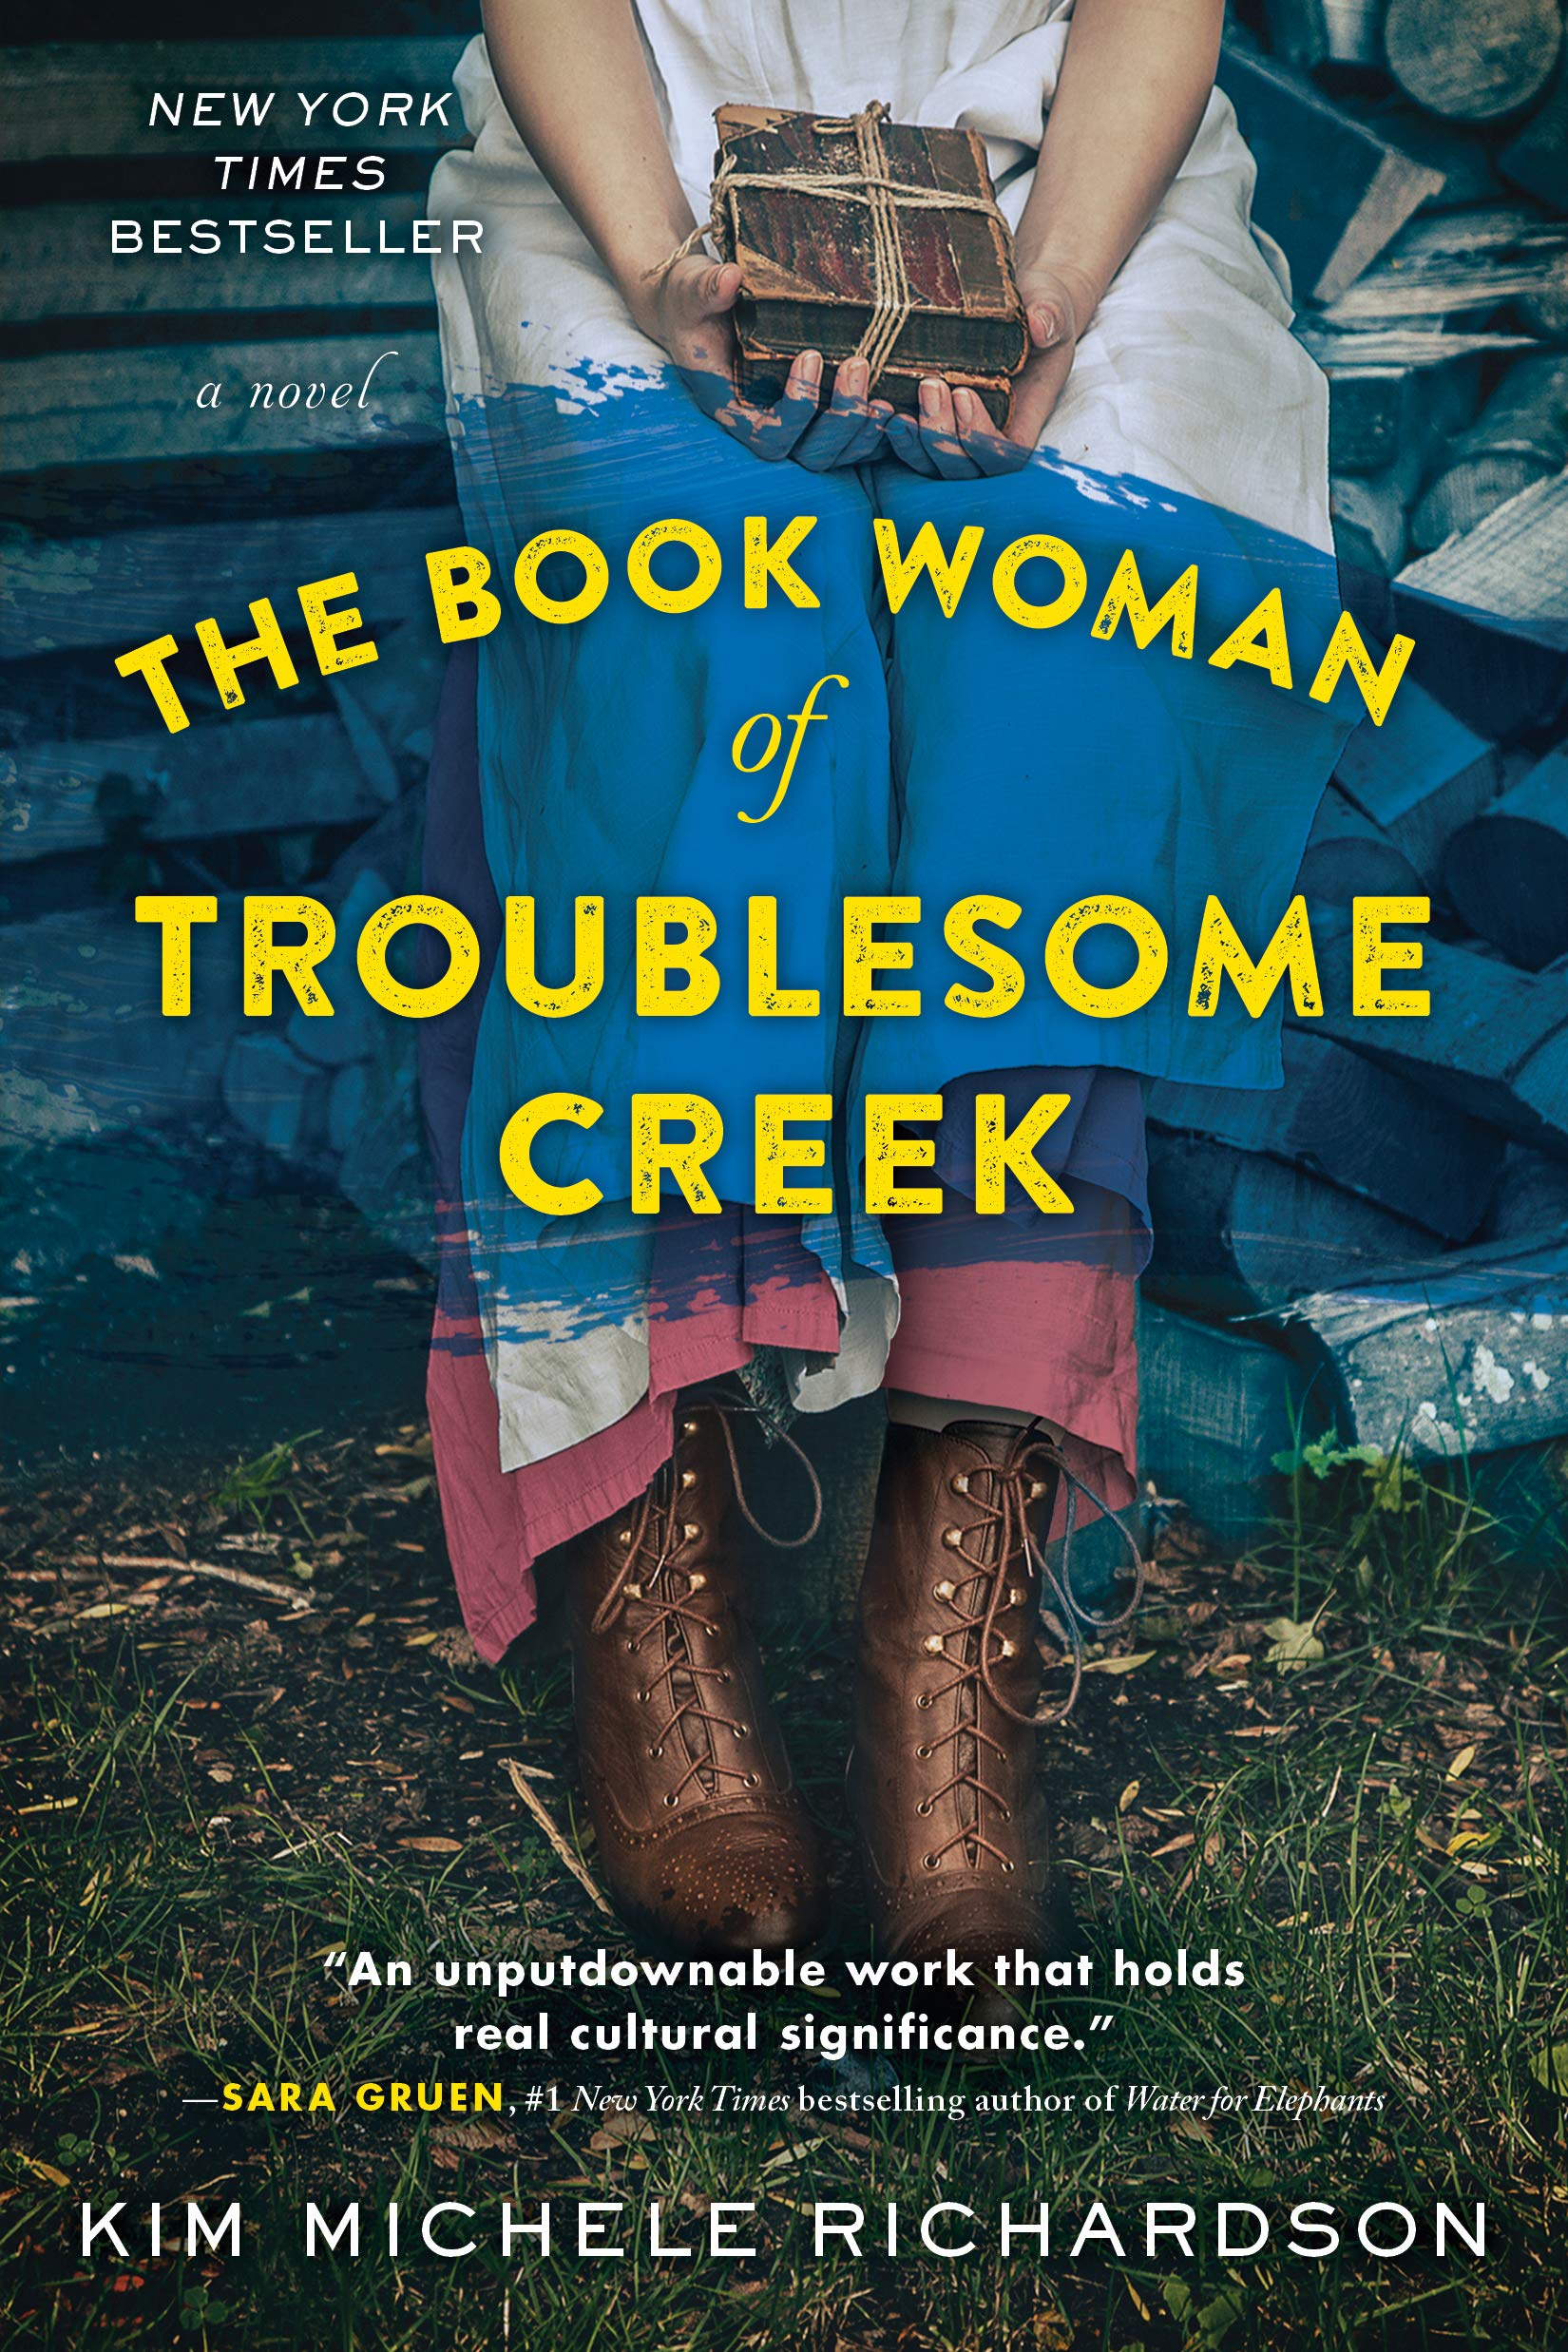 Book Woman of Troublesome Creek Cover Image